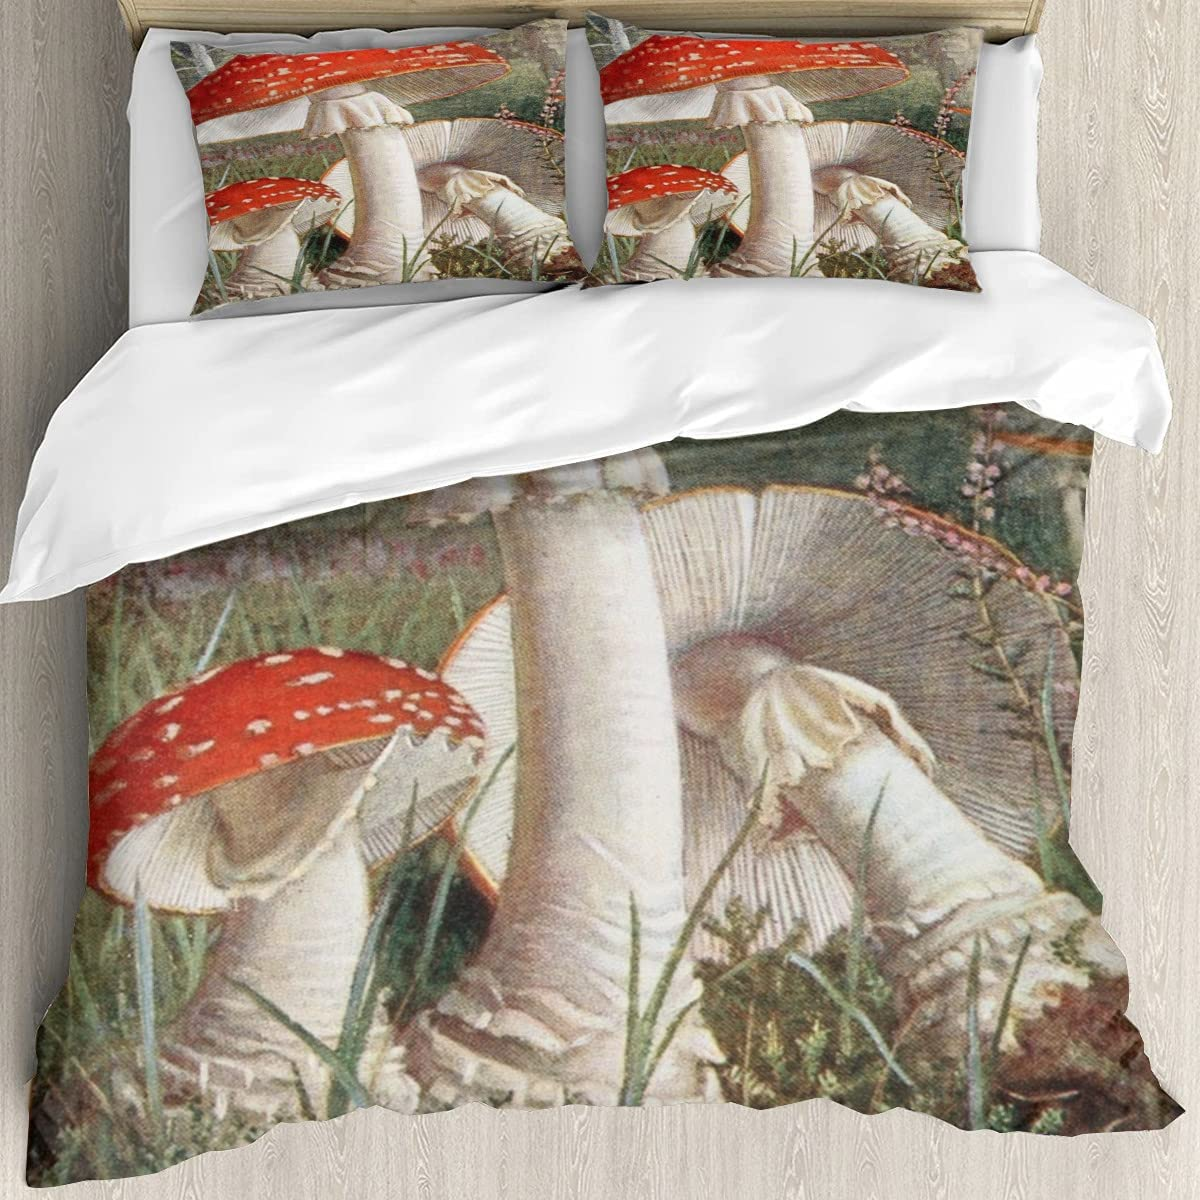 Pilze jahrhundert 3D Printing Cover Detroit Mall Twin and Bedding At the price Br Soft Set